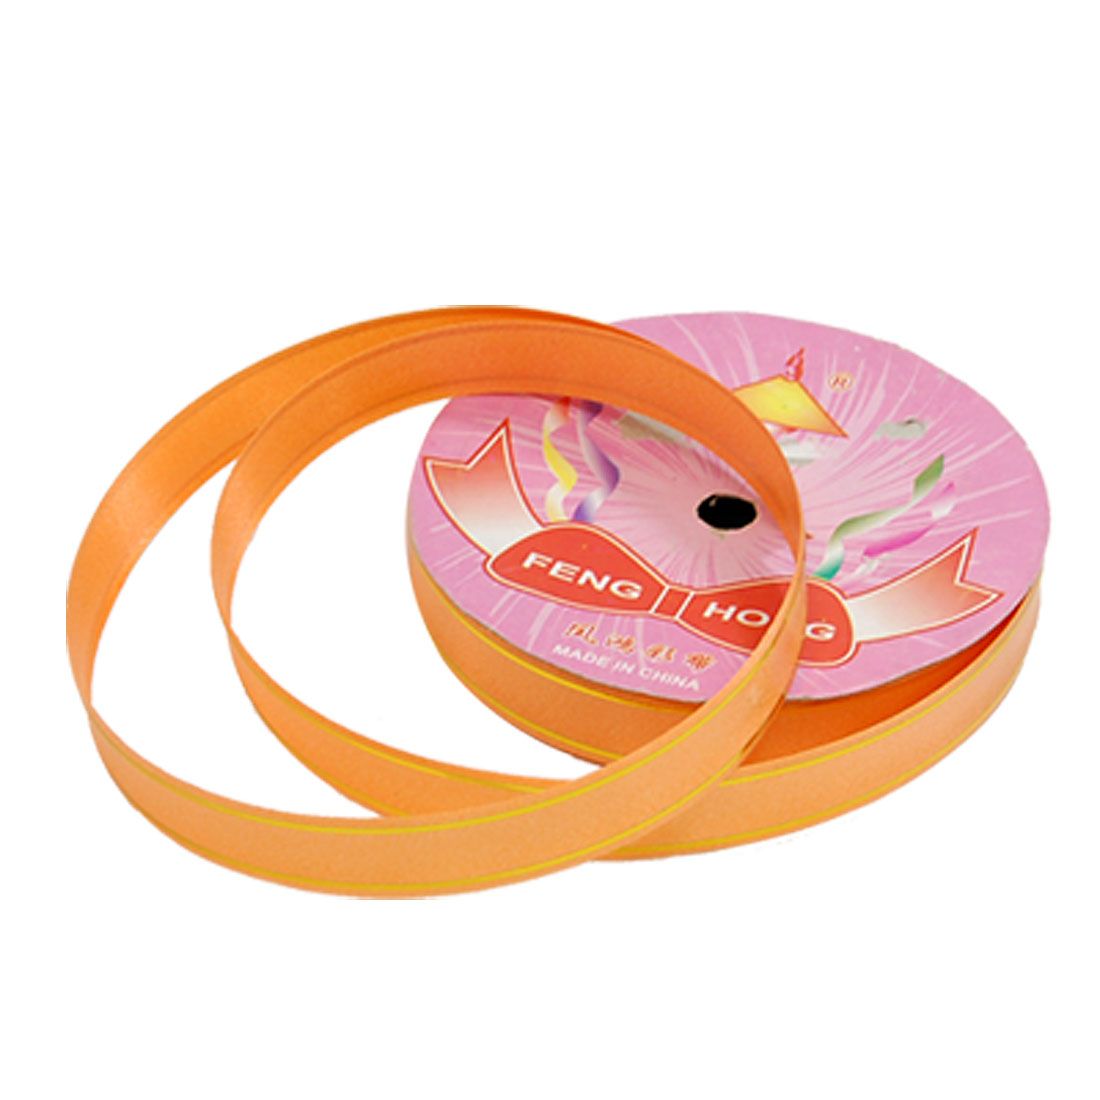 Gifts Packaging Wrapping Orange Pull Bows Circle Ribbons